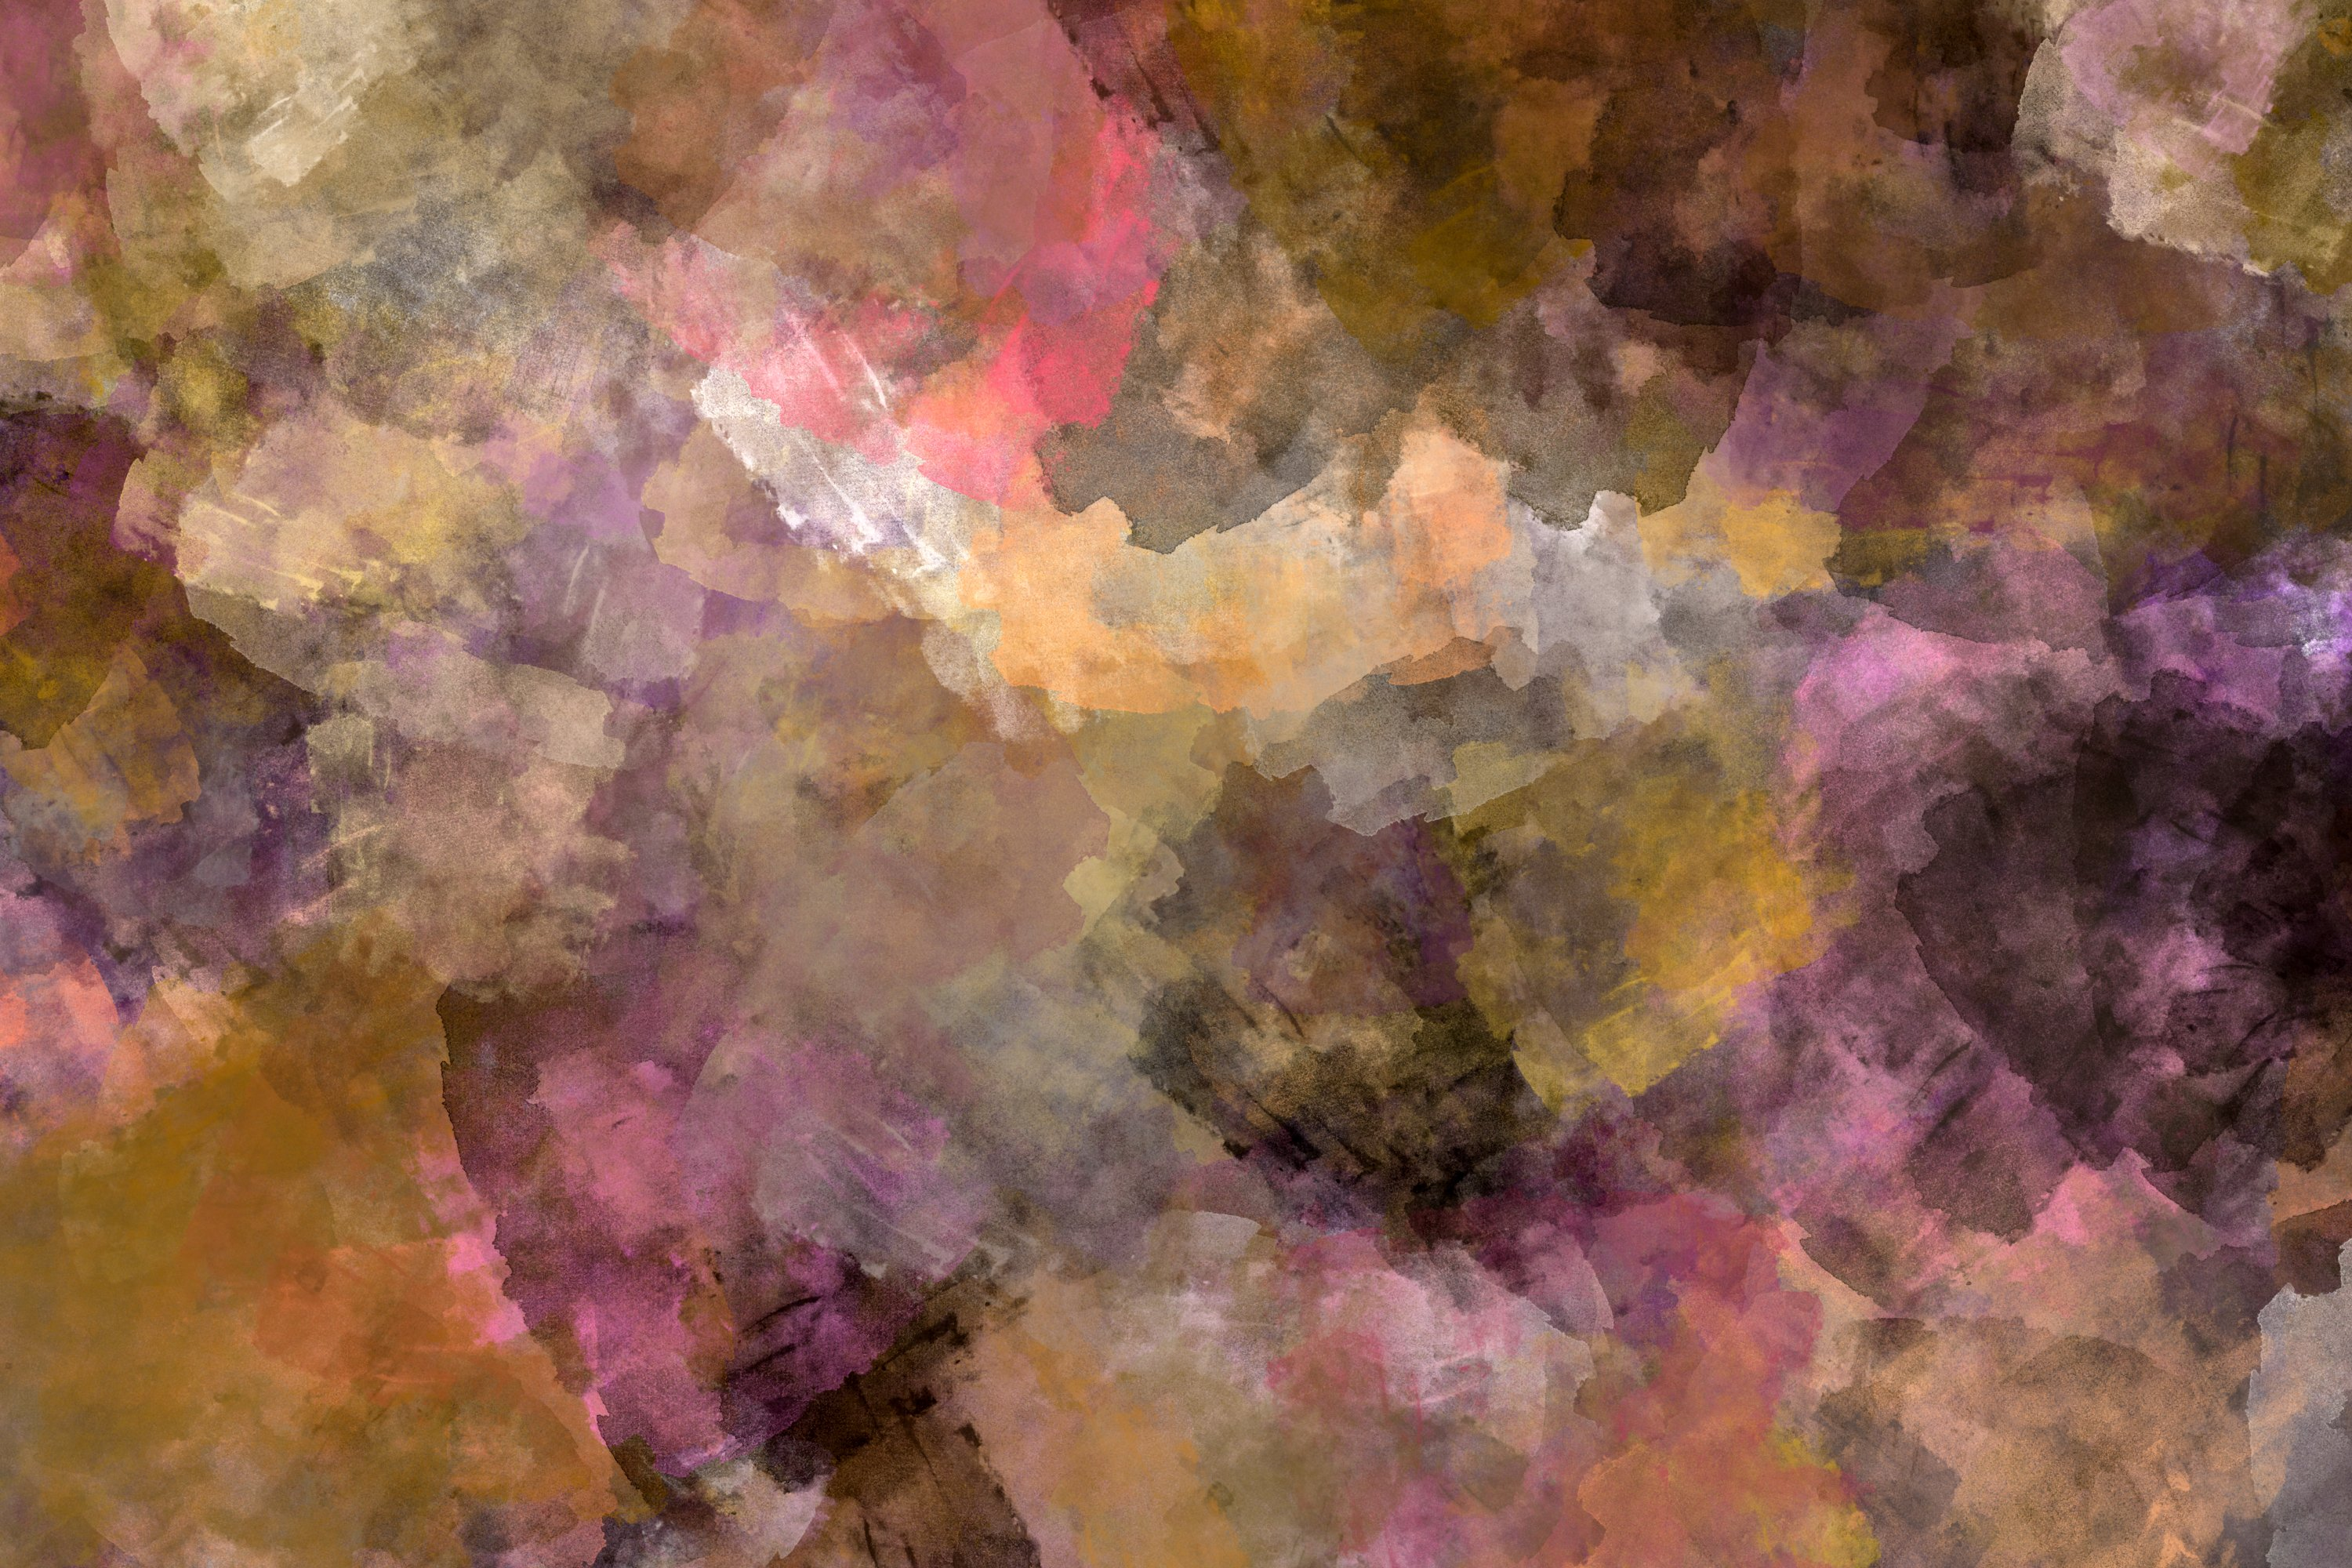 10 Grunge Watercolor Washes Textures example image 2